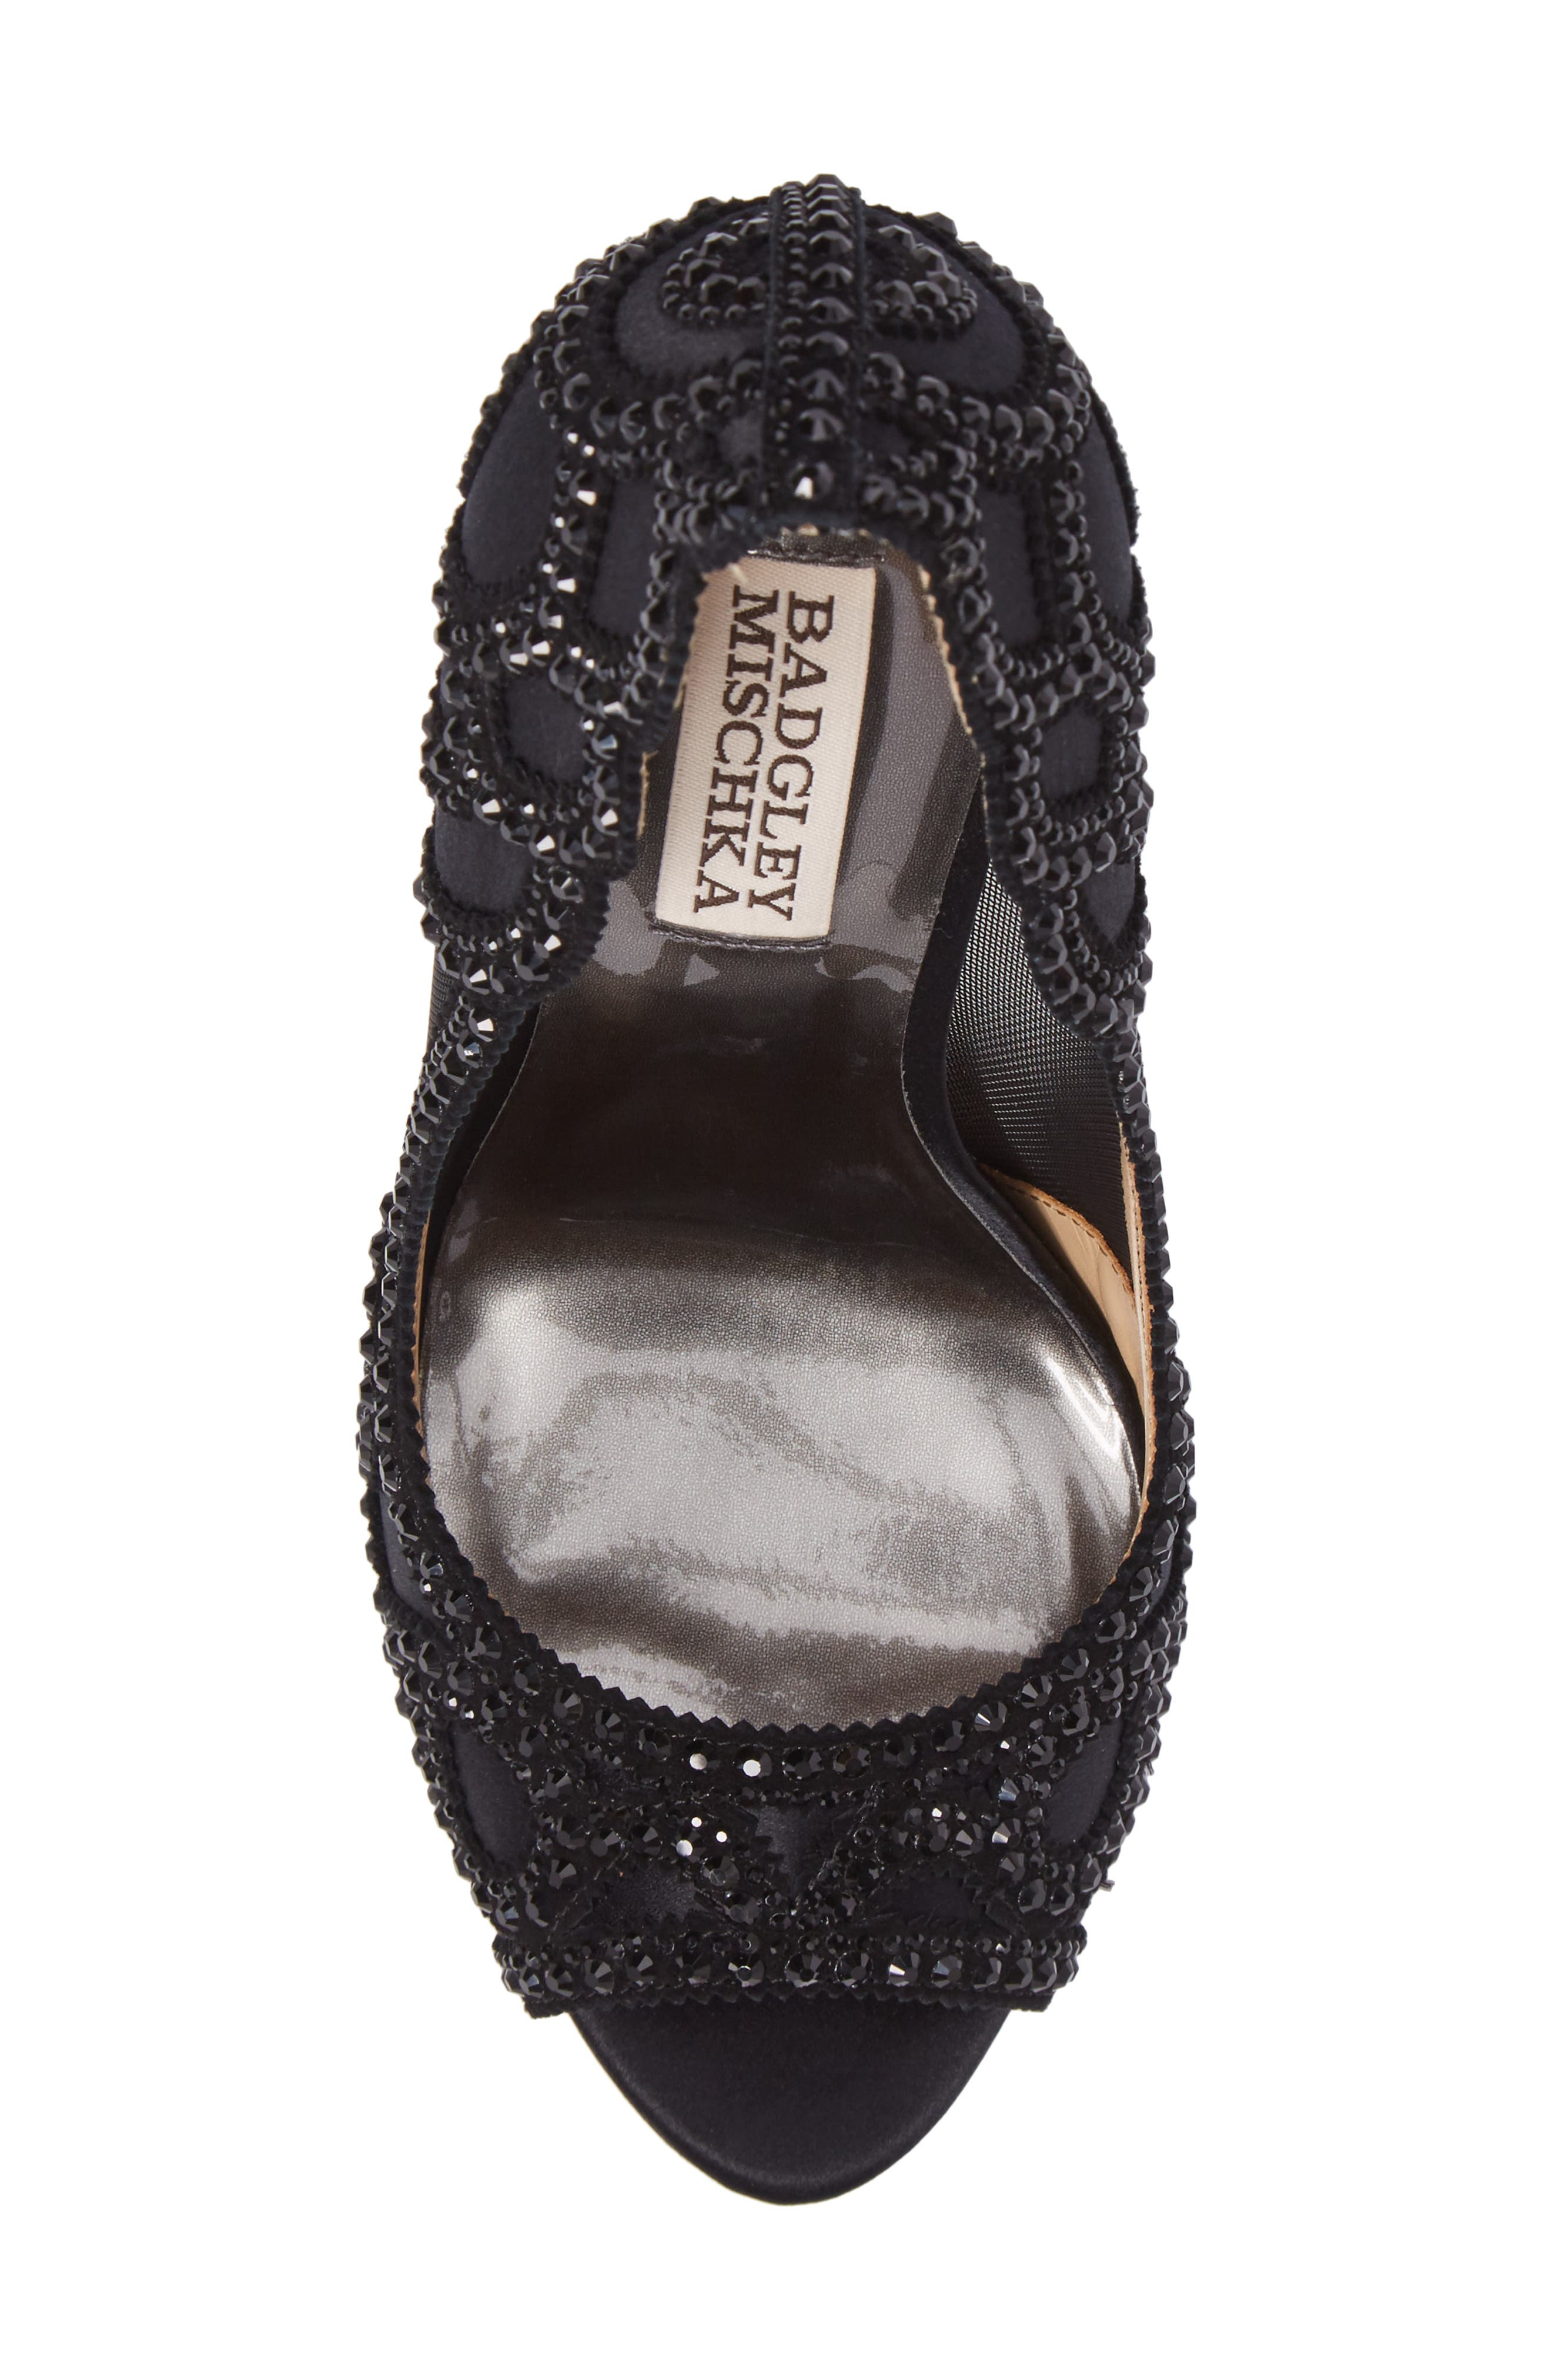 Witney Embellished Peep Toe Pump,                             Alternate thumbnail 5, color,                             Black Satin